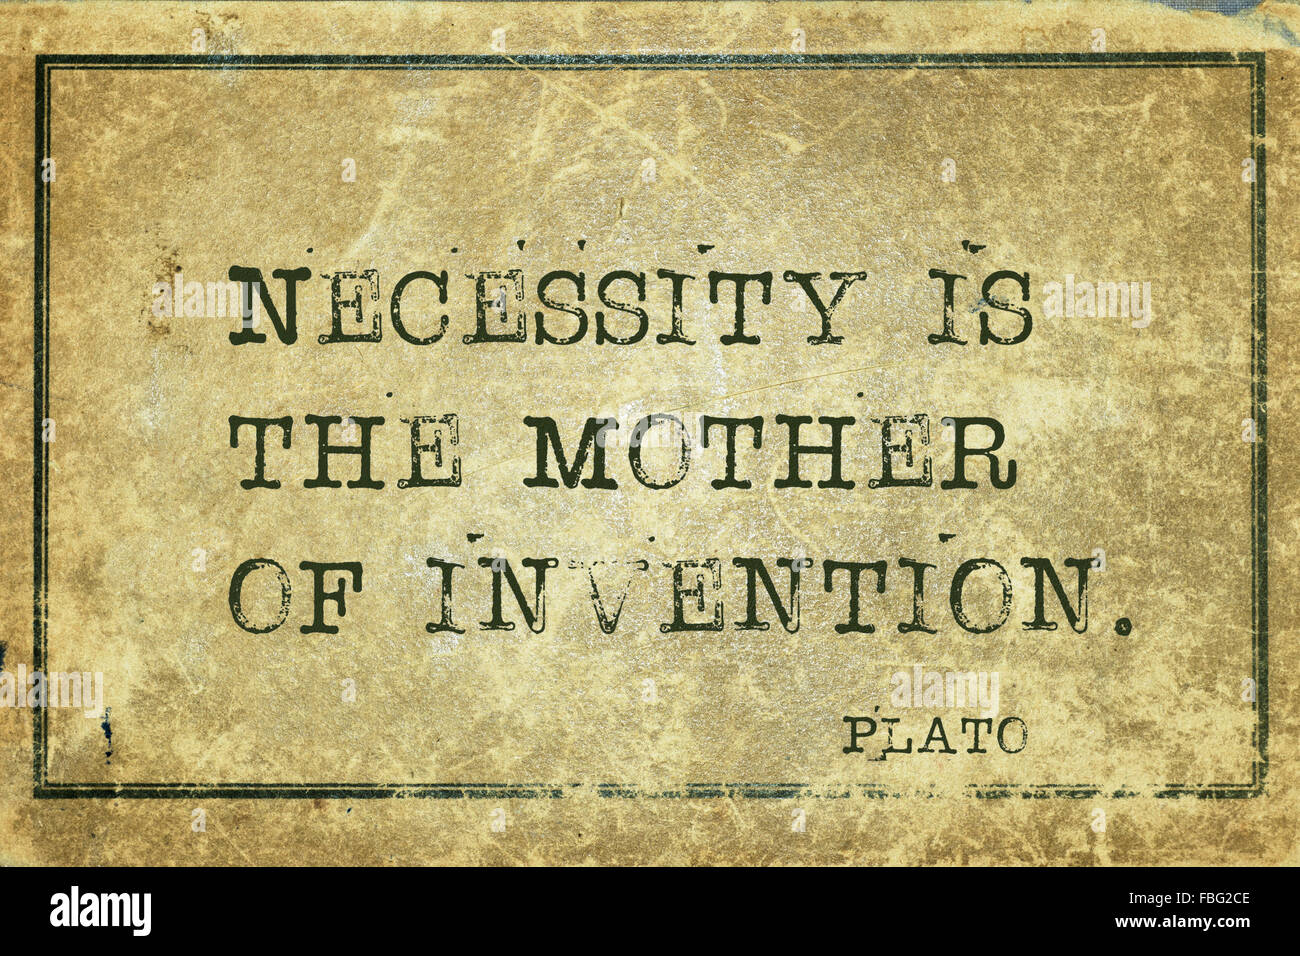 essay on necessity is the mother of invention Meaning: the meaning of the proverb necessity is the mother of invention is that when we stand in dire need of a thing, we can never rest satisfied until we get it.